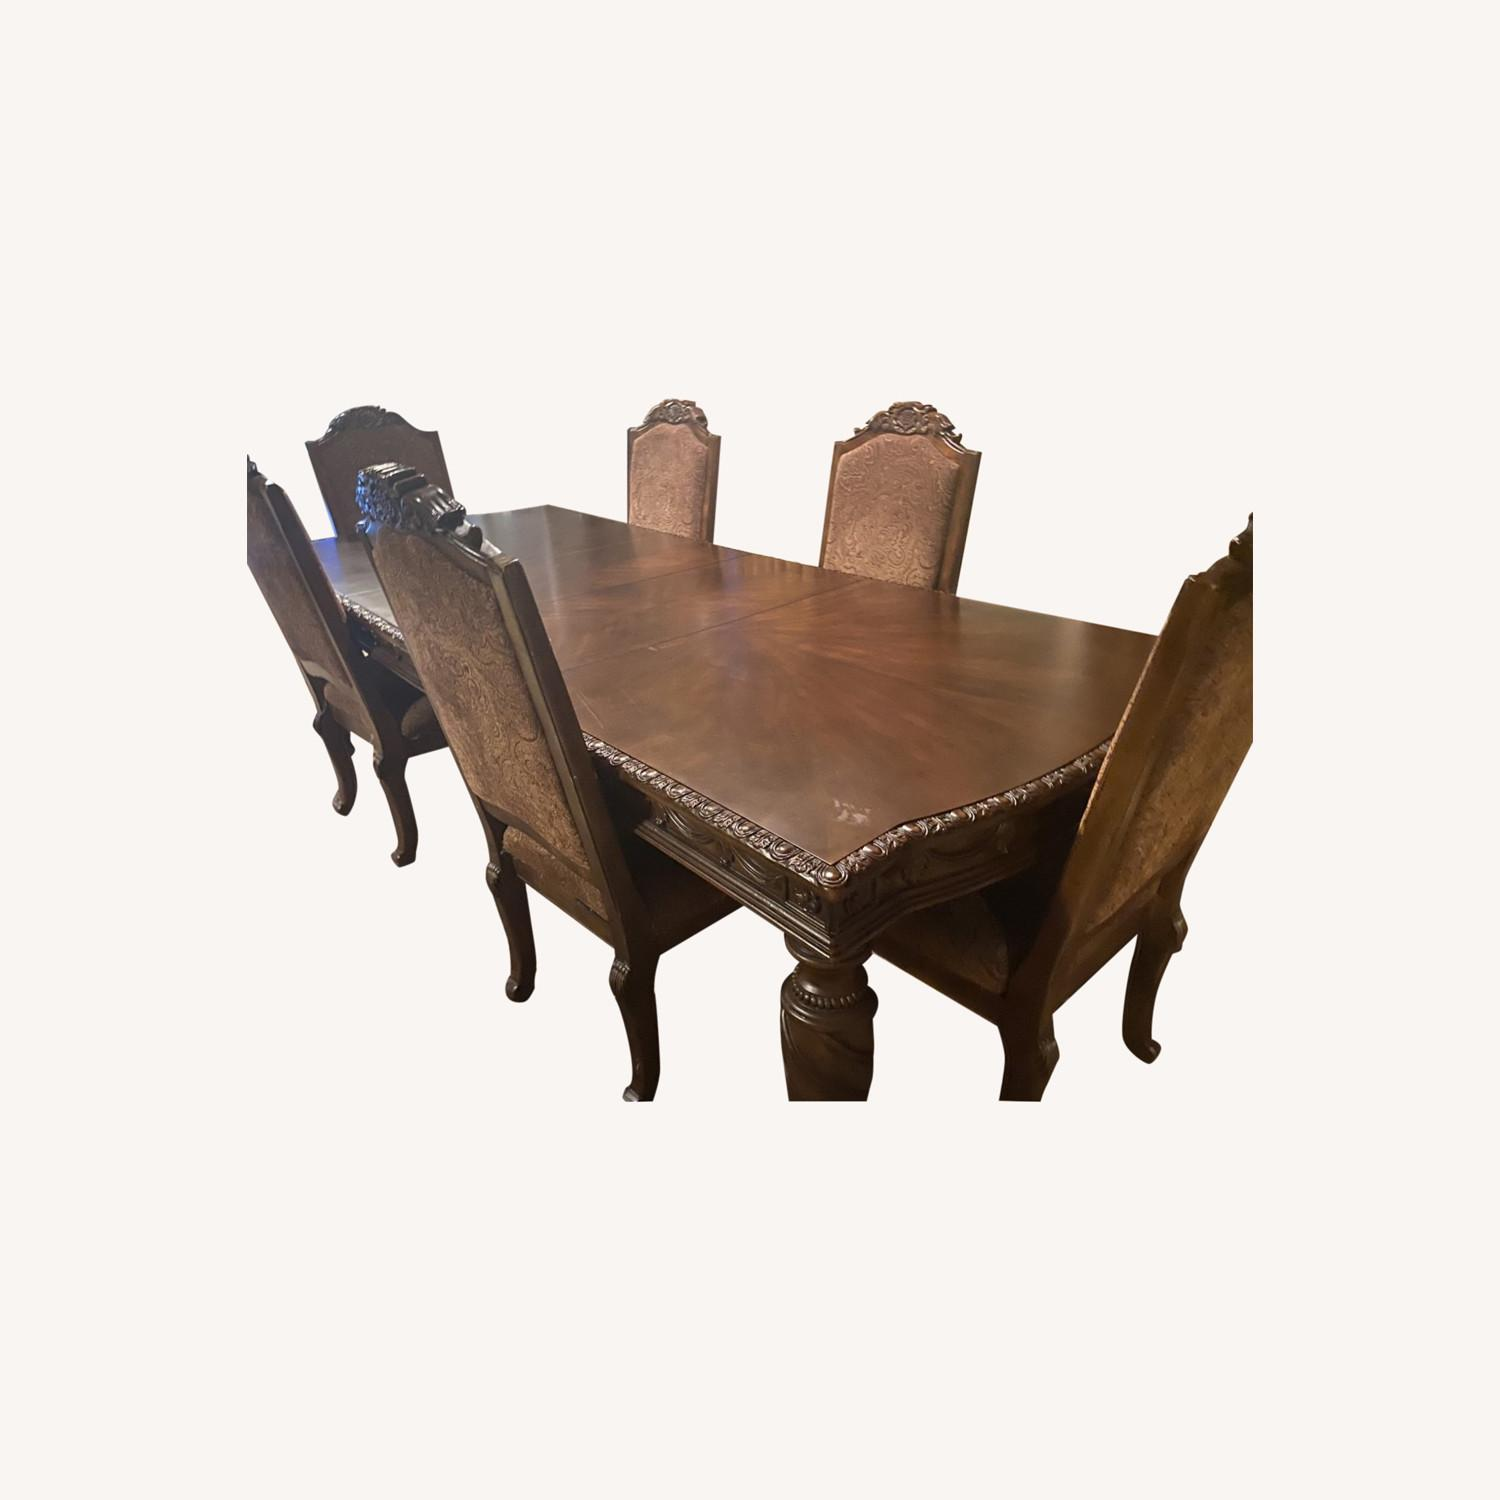 Ashely Furniture 6 pc Dining Table - image-0